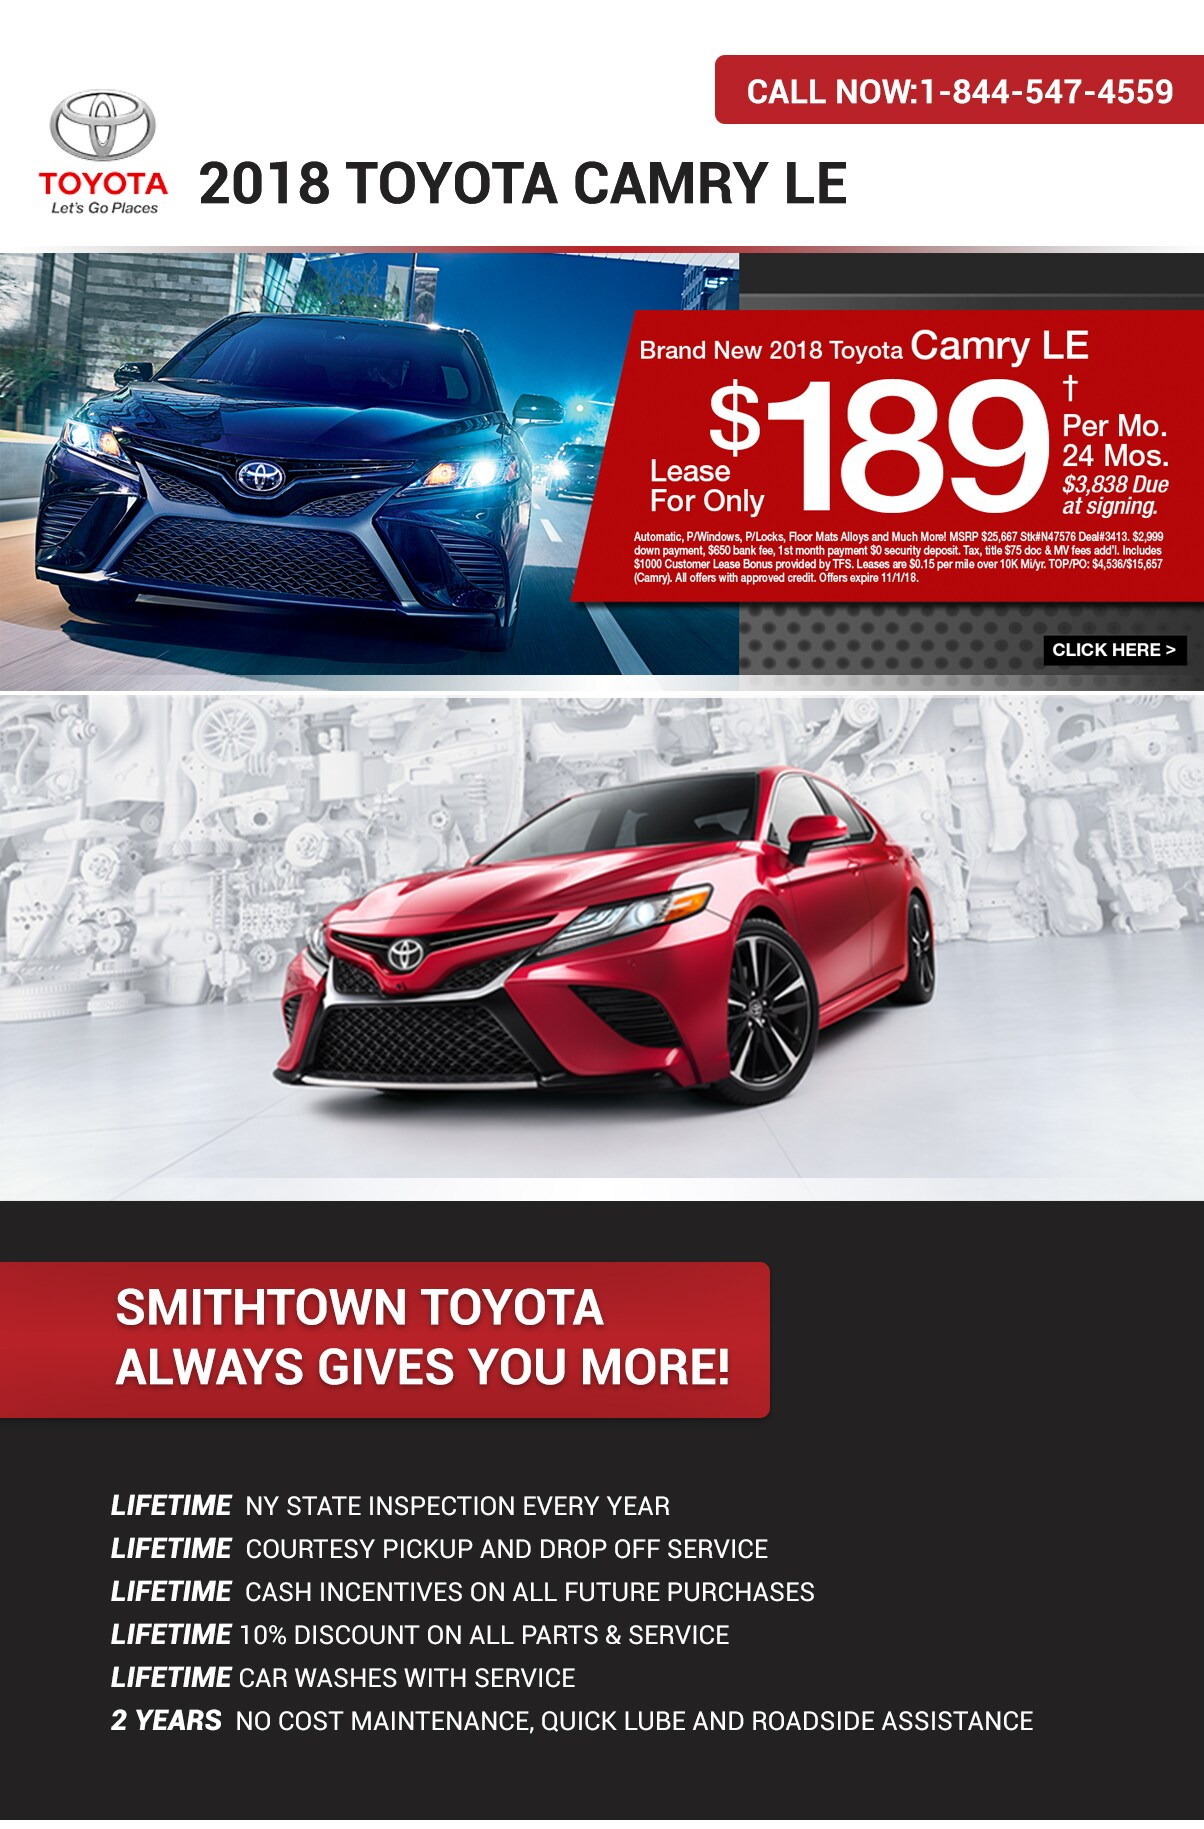 Toyota Camry Dealer Long Island NY - Acura dealers long island